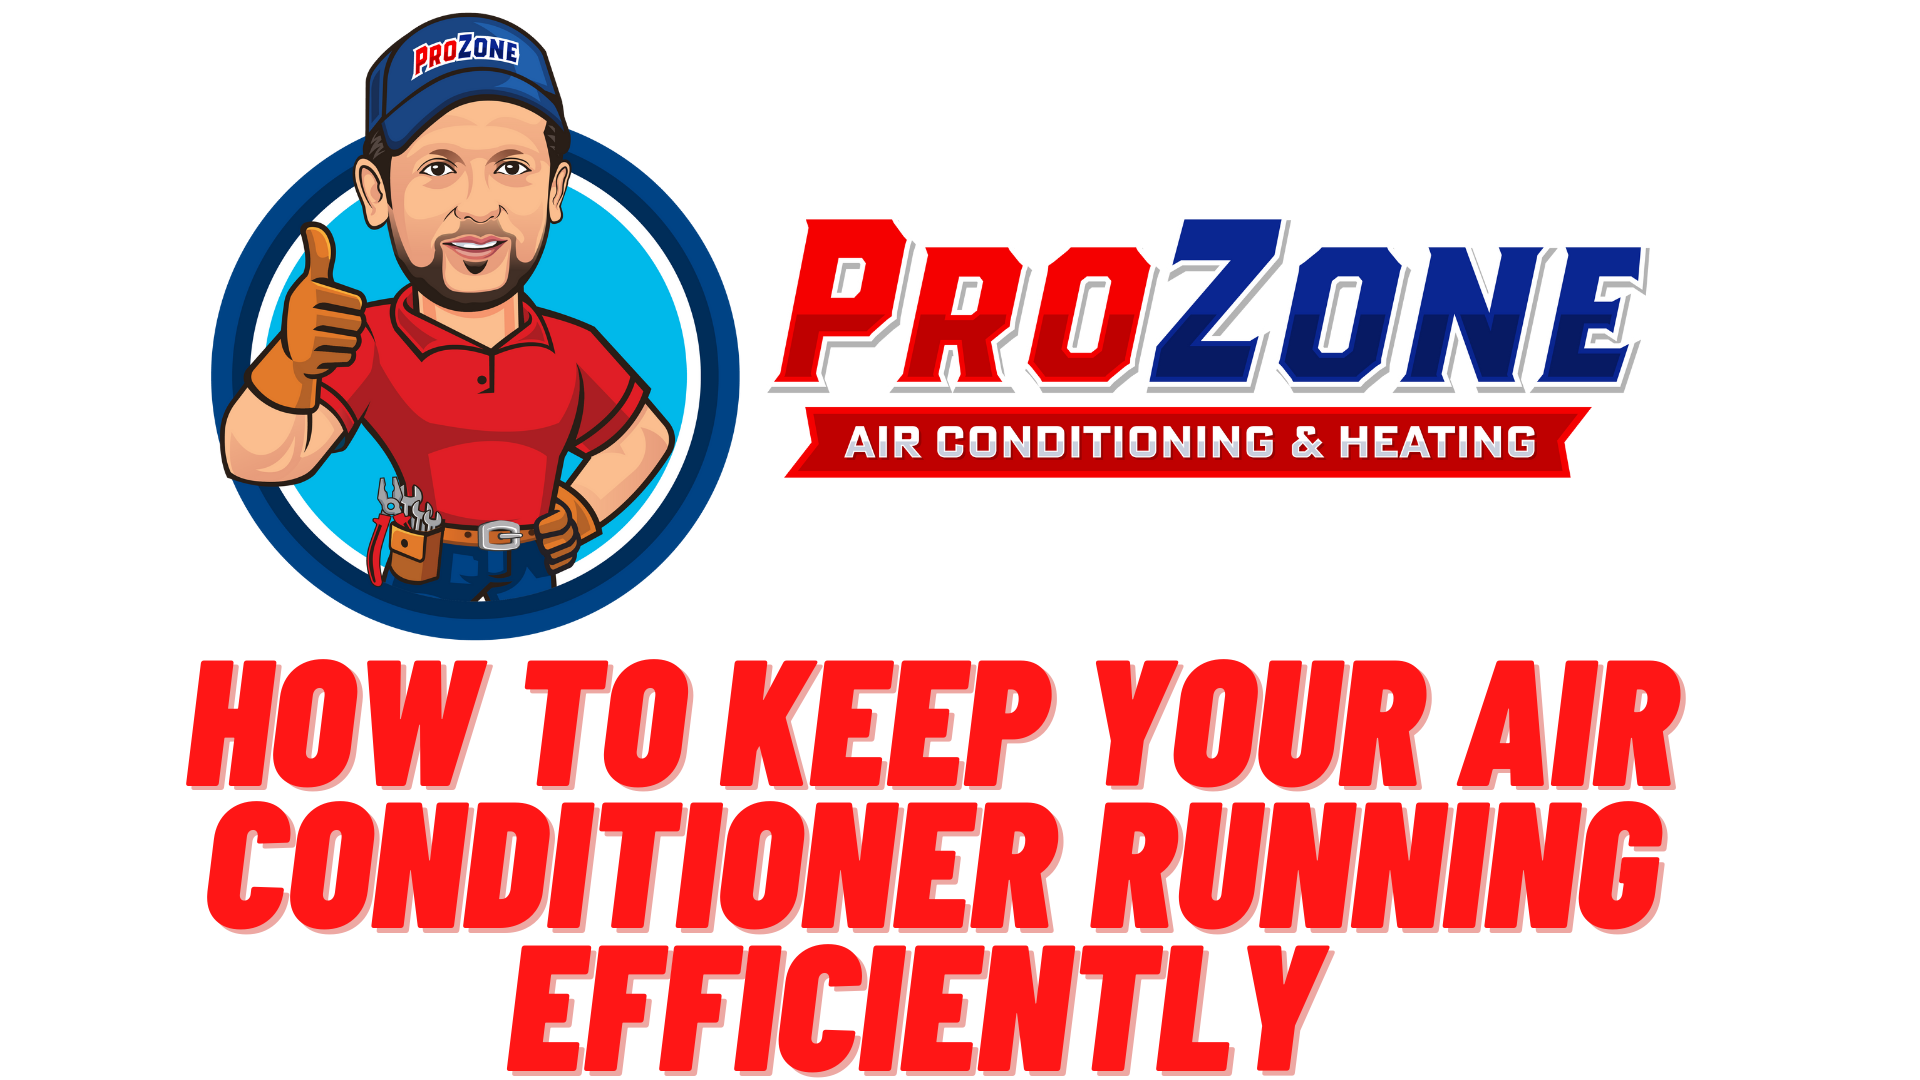 AC Repair Las Vegas: How to Keep Your Air Conditioner Running Efficiently and Effectively